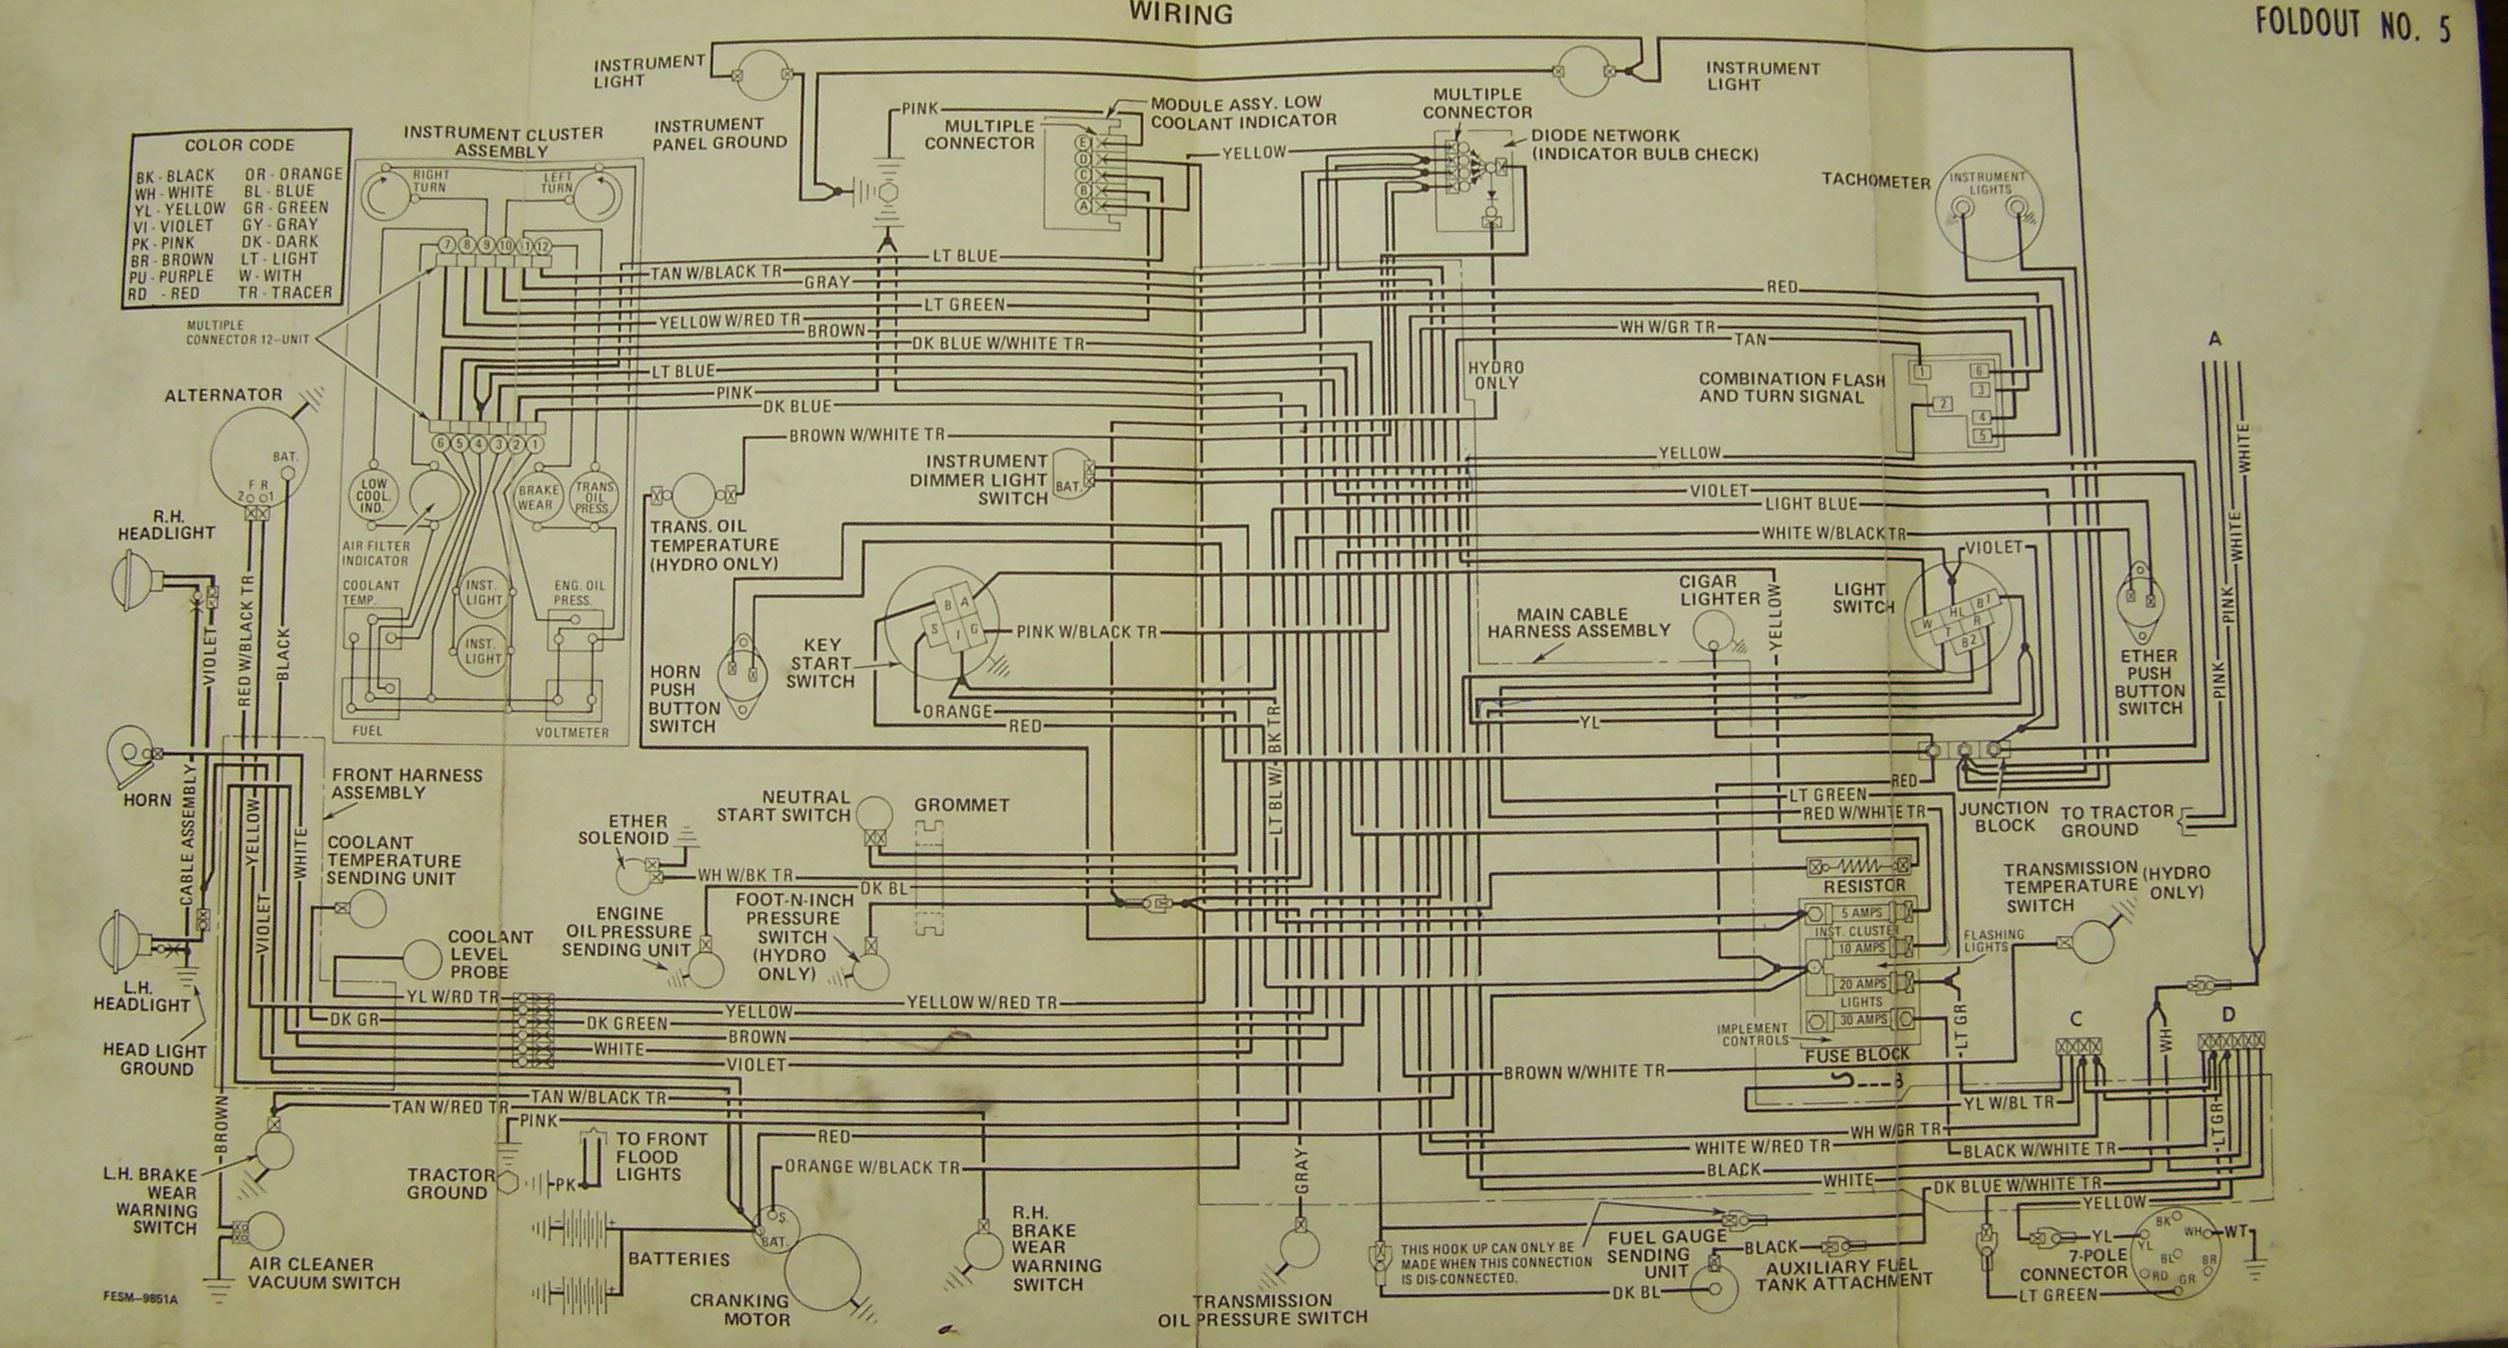 carter & gruenewald co inc ih farmall tractor electrical wiring case ih 7110 wiring schematic ih 86 series foldout 6